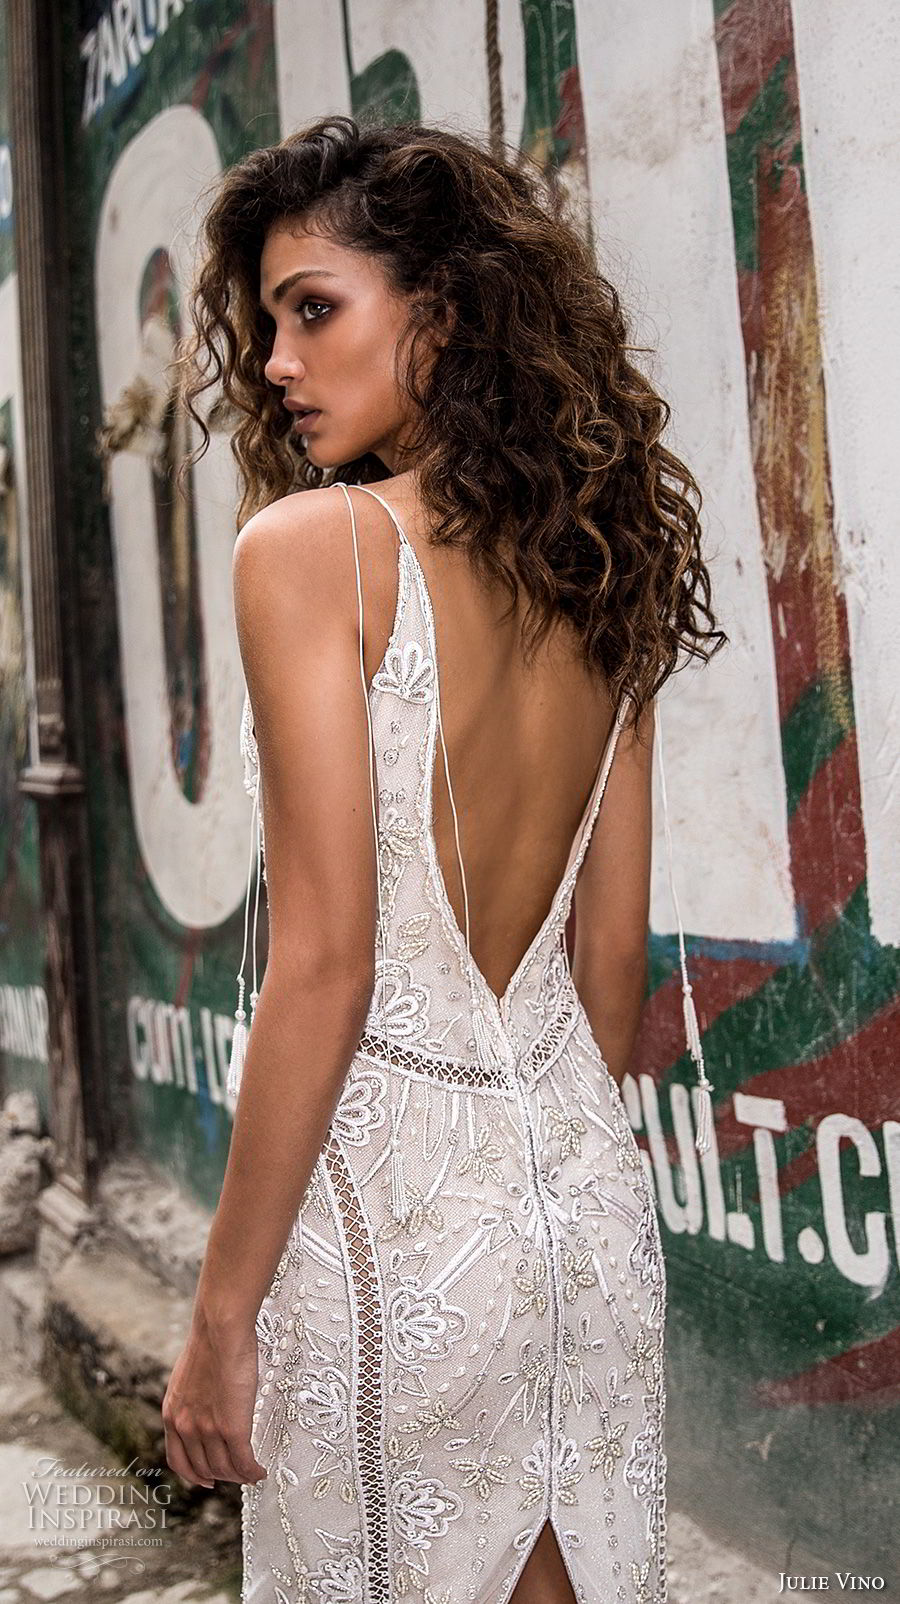 julie vino fall 2018 havana spaghetti strap deep sweetheart neckline full embellishment elegant glamorous sheath wedding dress open v back sweep train (14) zbv